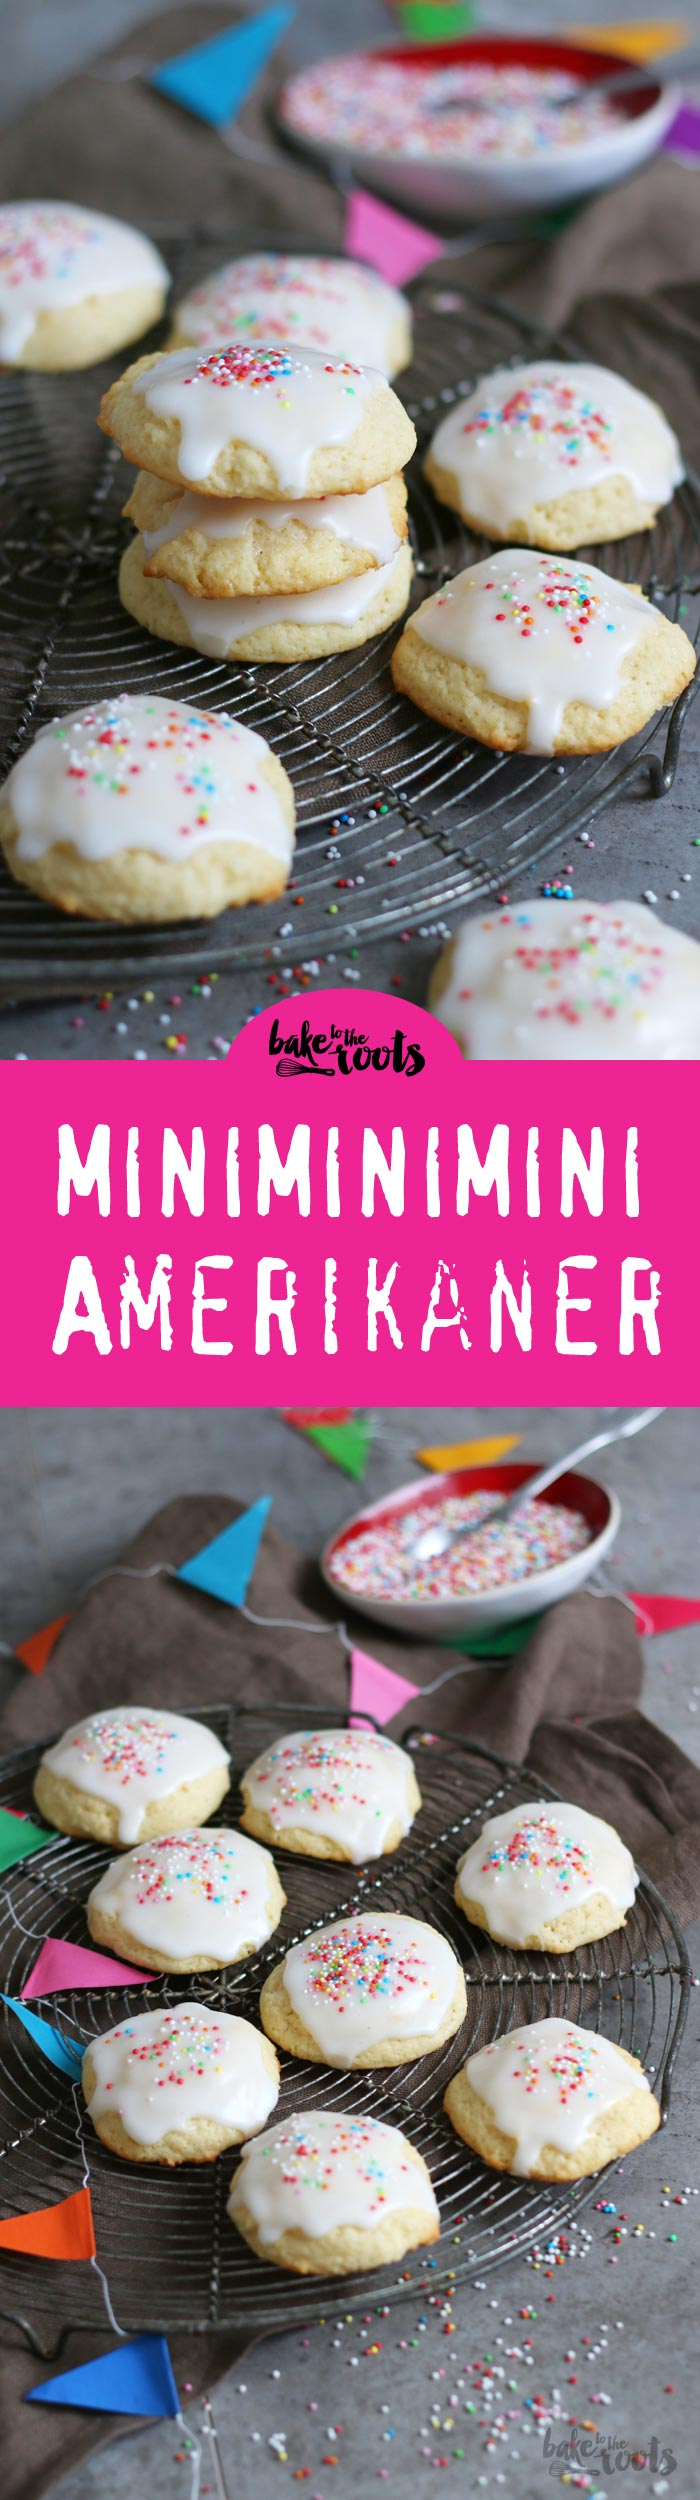 Mini Amerikaner | Bake to the roots